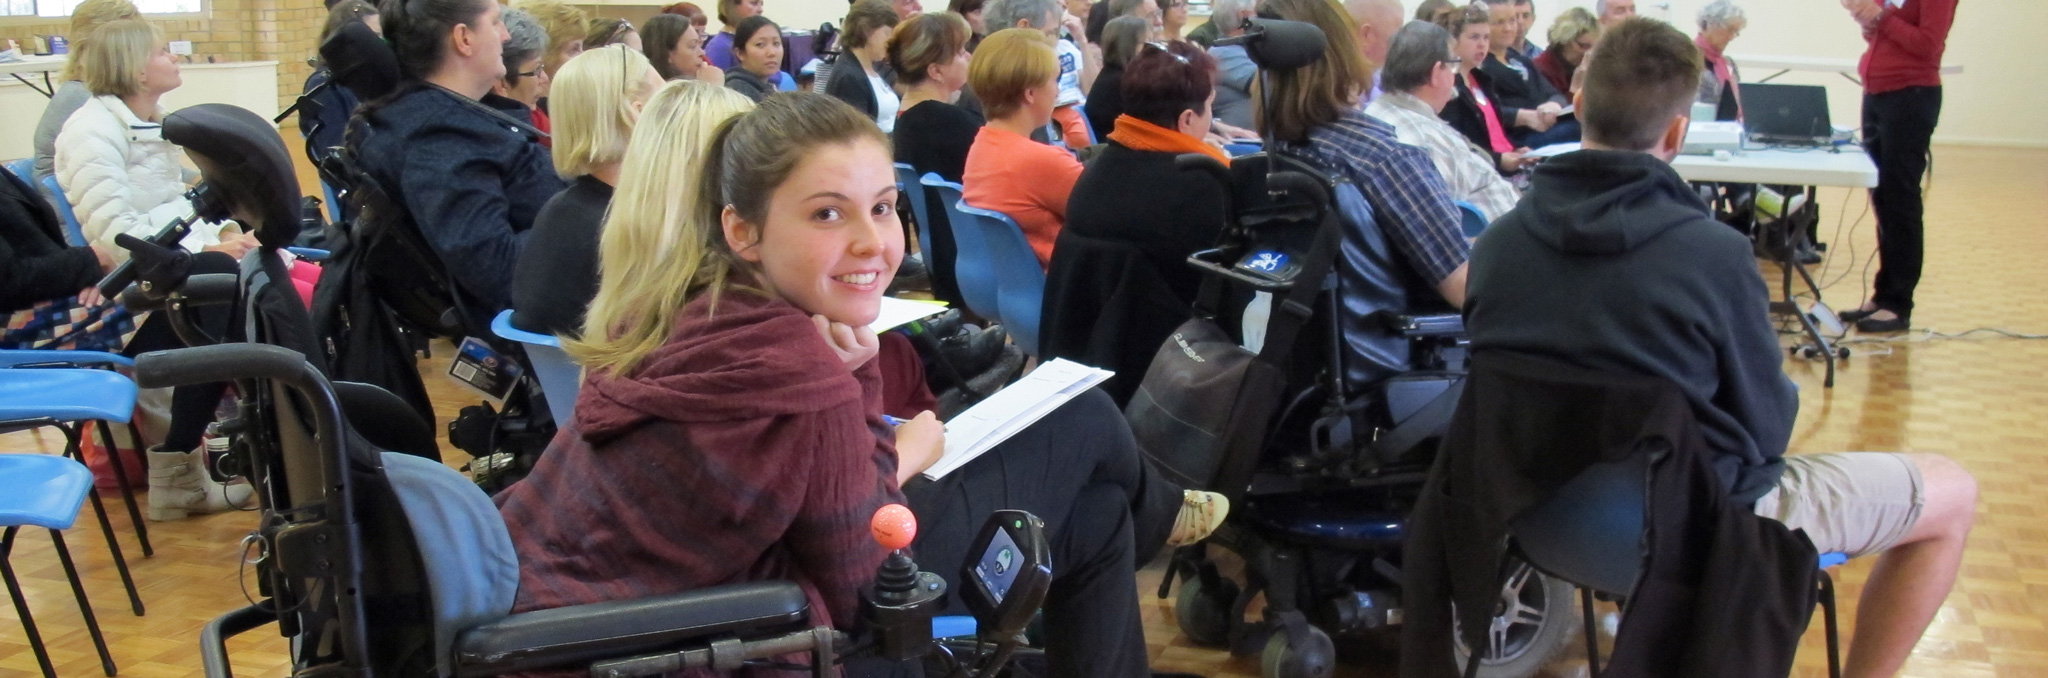 Smiling young lady in a wheelchair at an event